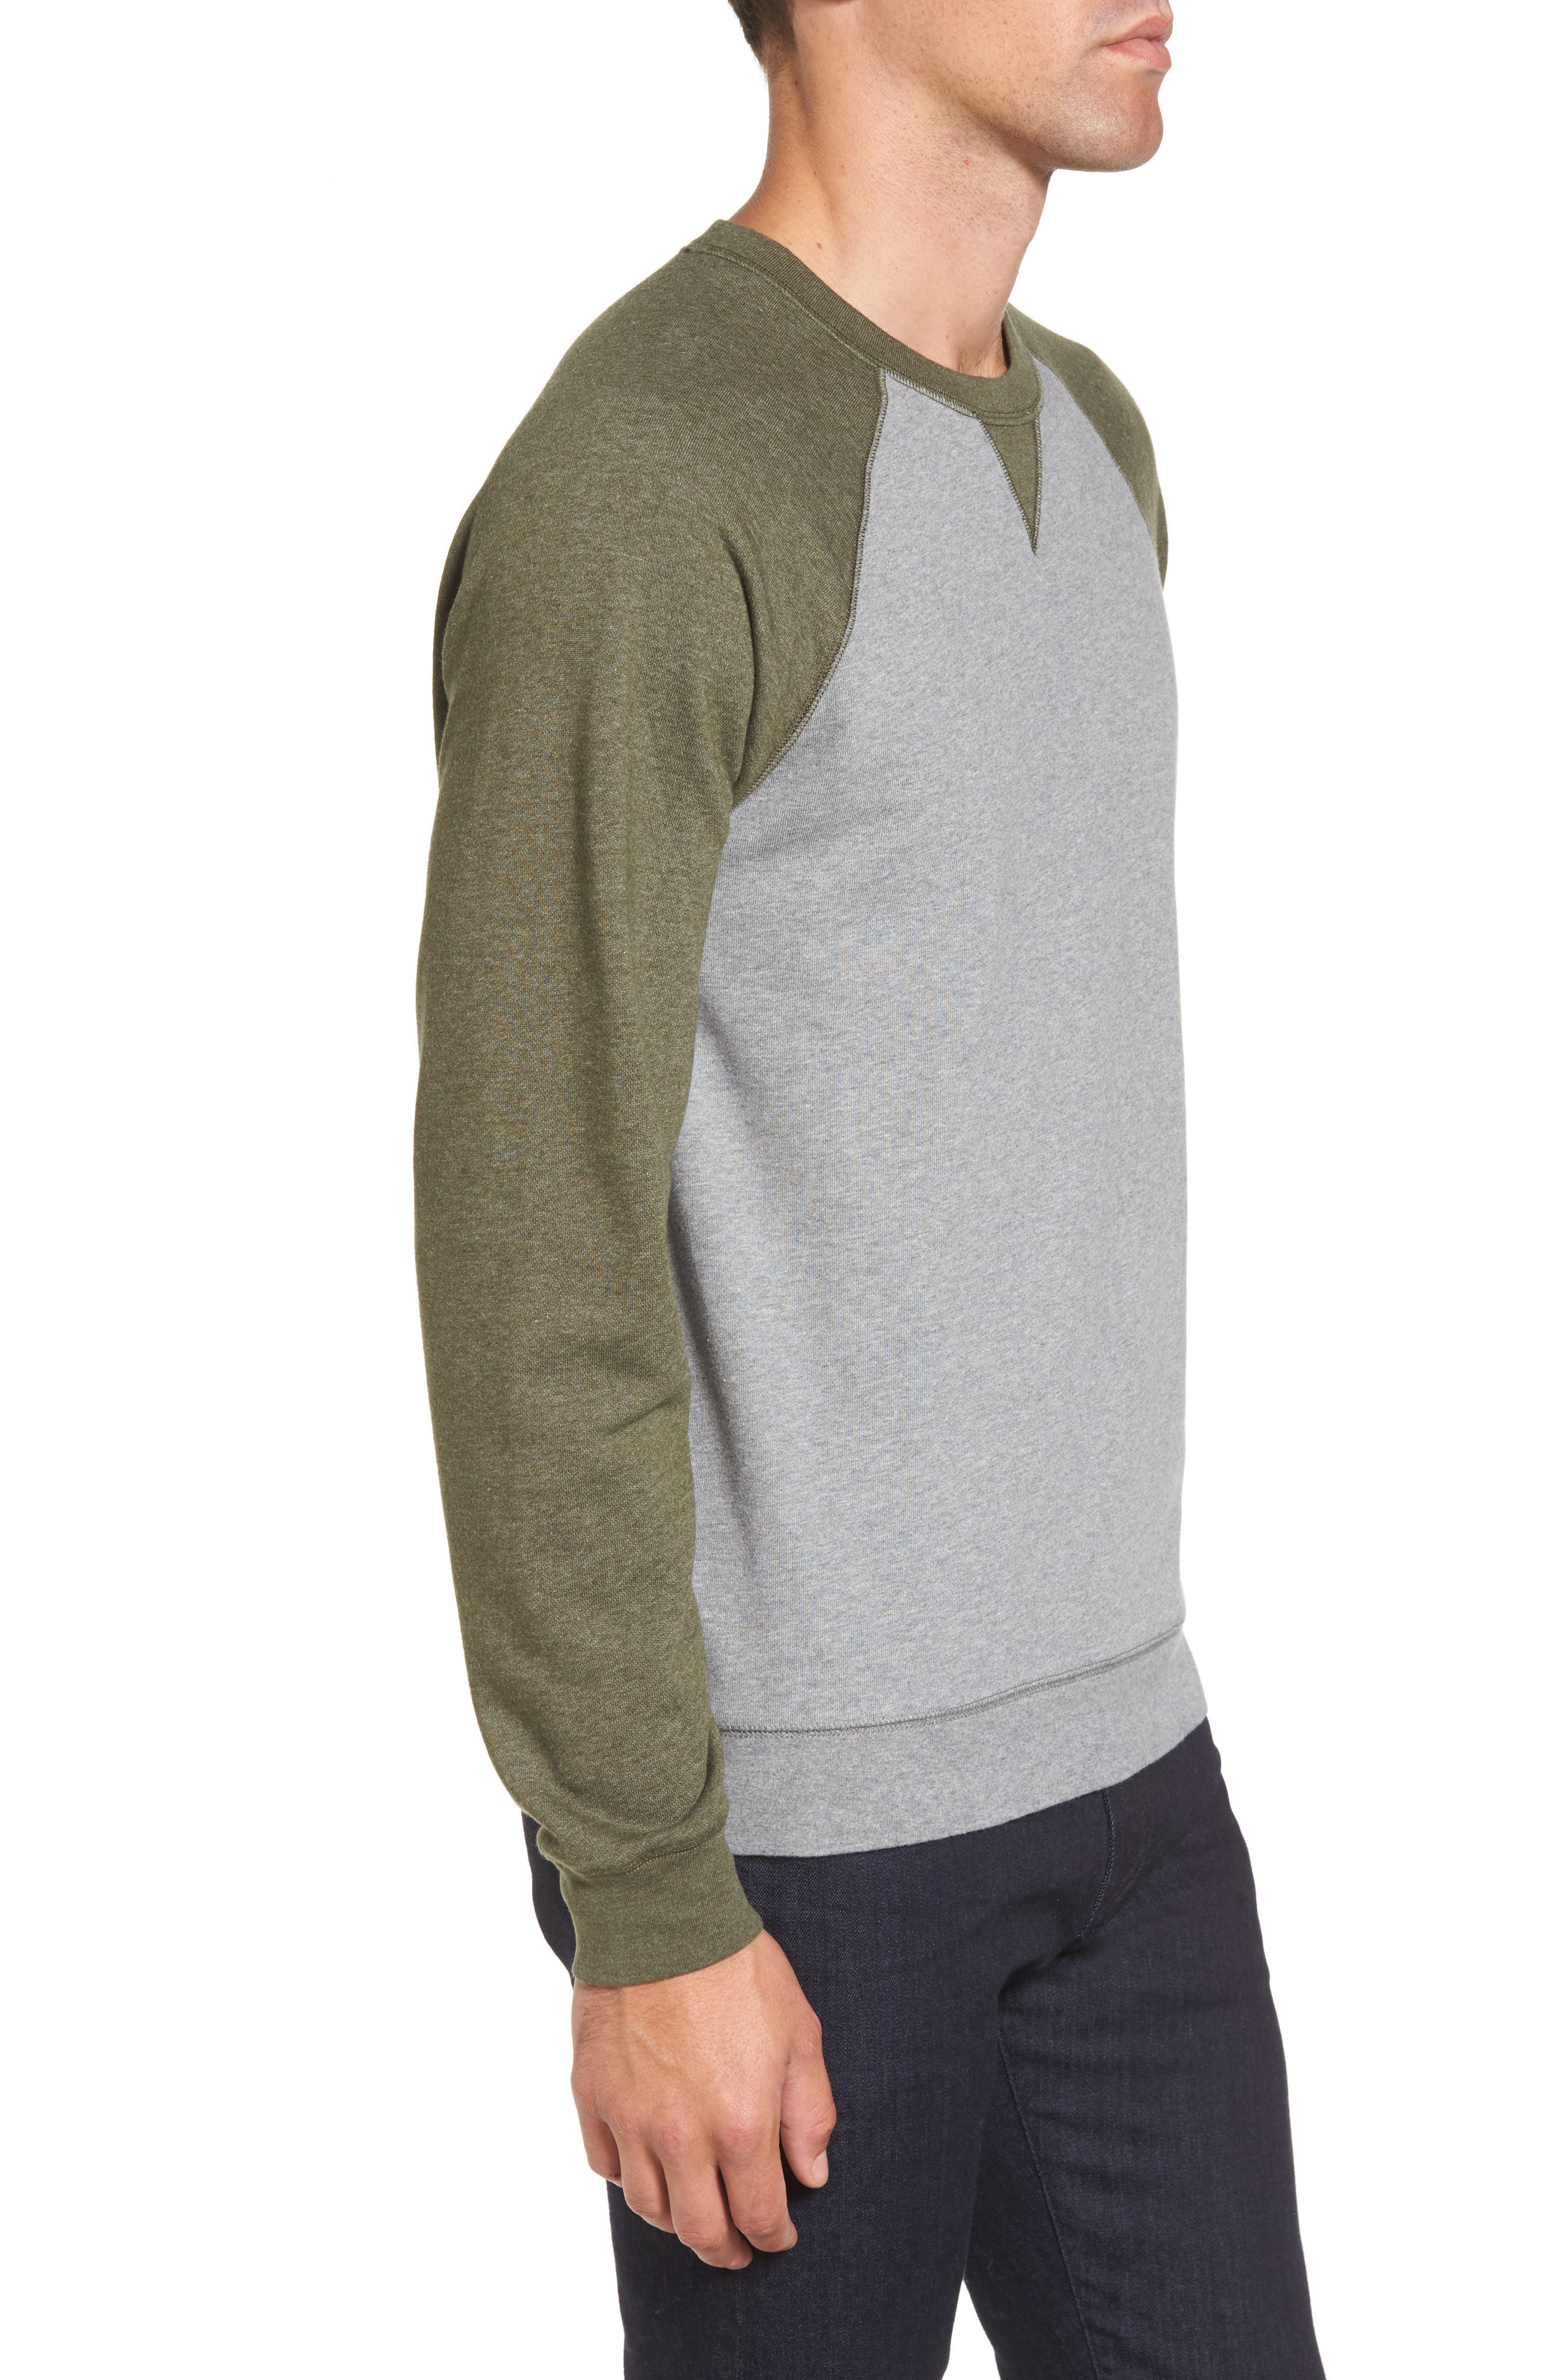 Colorblock French Terry Sweatshirt,                             Alternate thumbnail 3, color,                             032